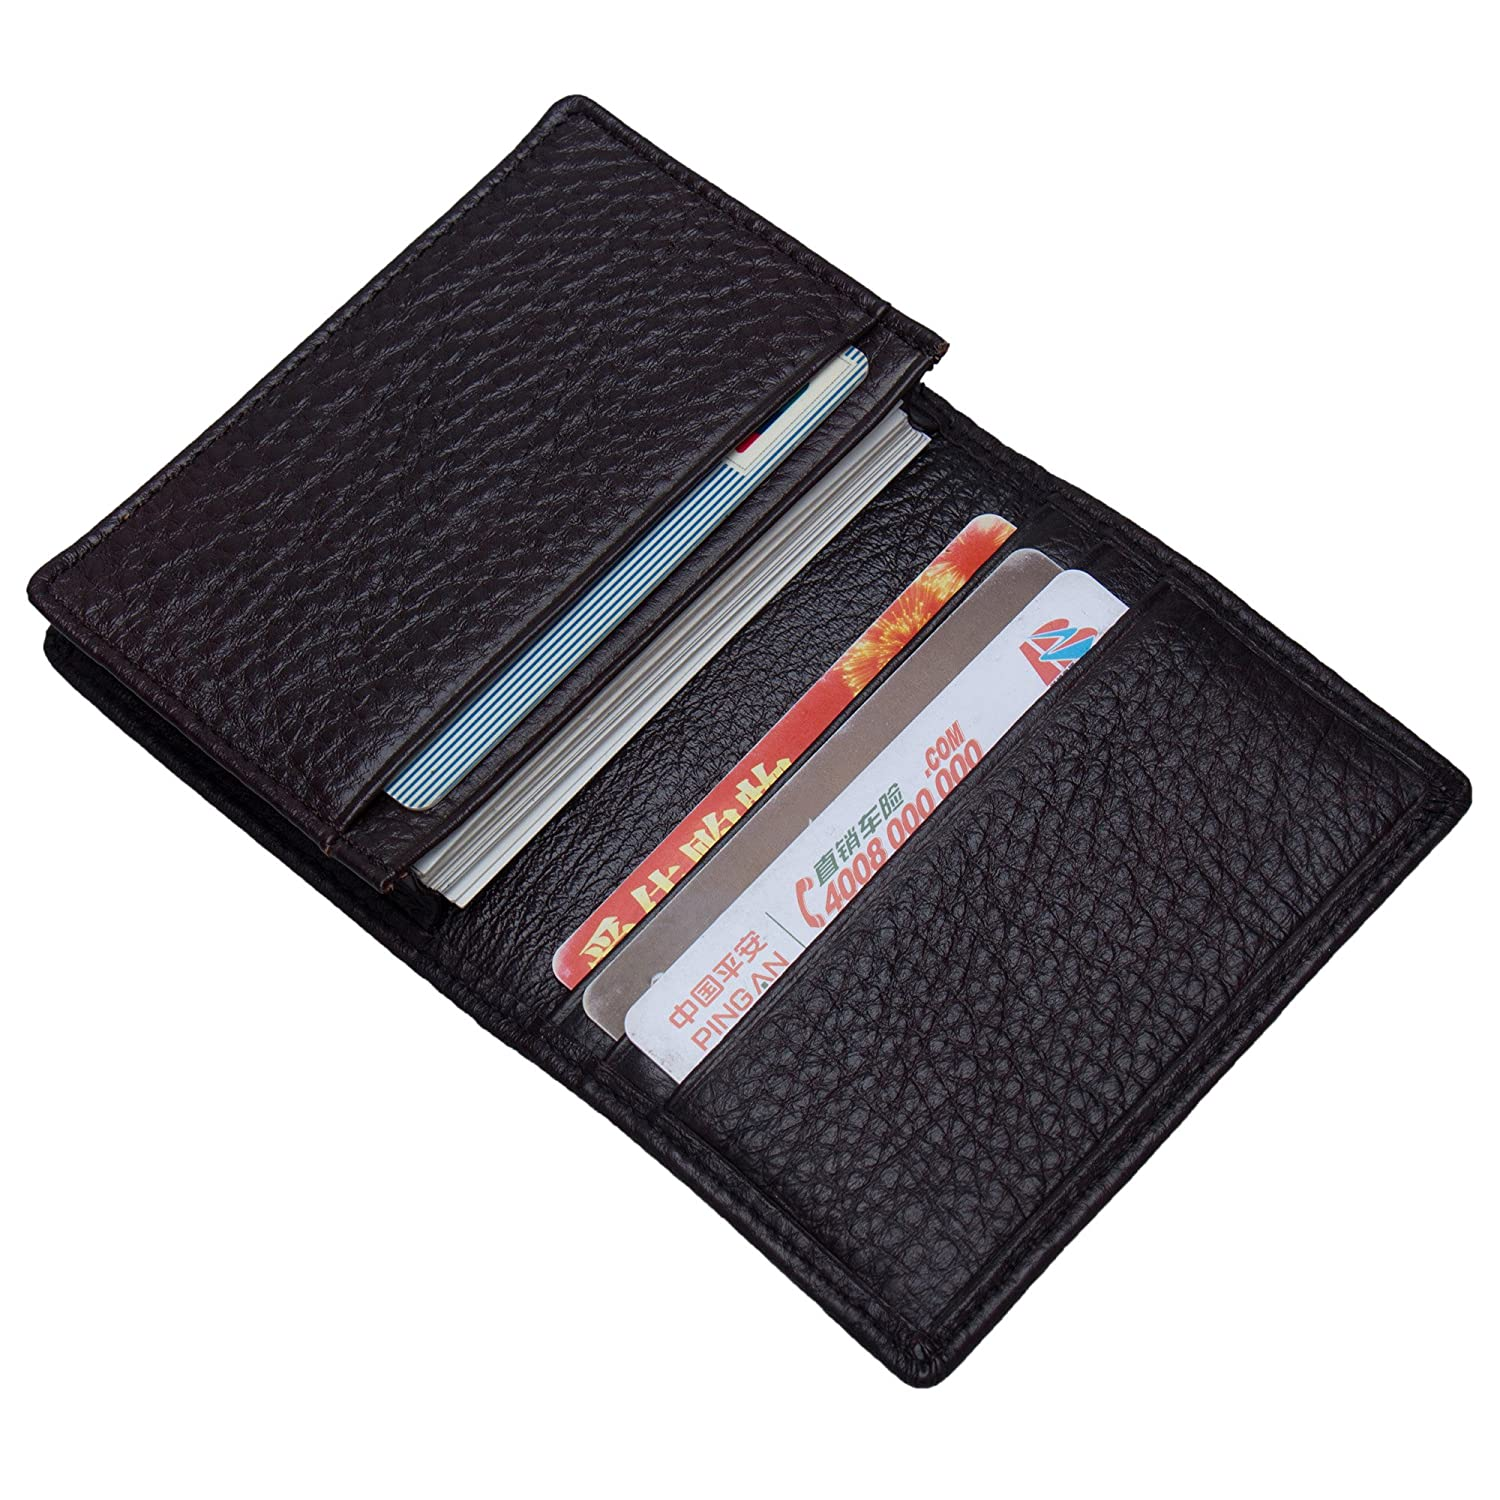 ZONGSHU Business Card Holder Genuine Leather Name Card Case Credit Card Wallet RFID Blocking